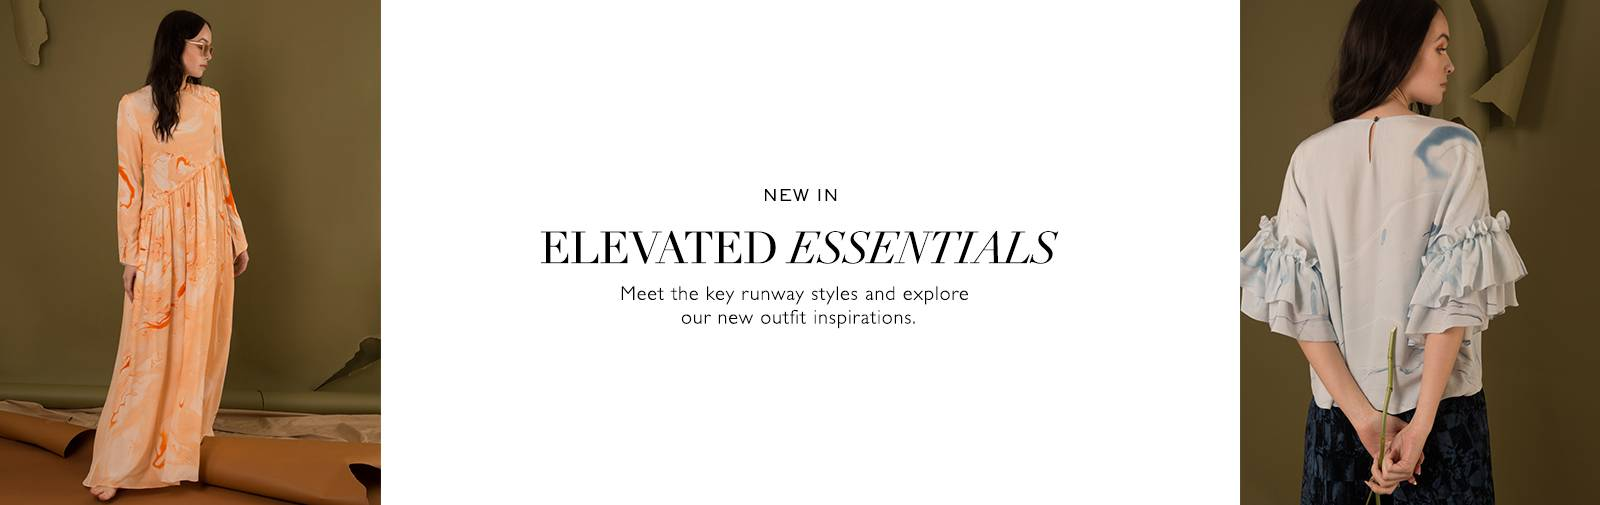 Verdelimon New In - Elevate your wardrobe with this season's effortless cool summer essentials, mixing luxury and a touch of iconic new designs